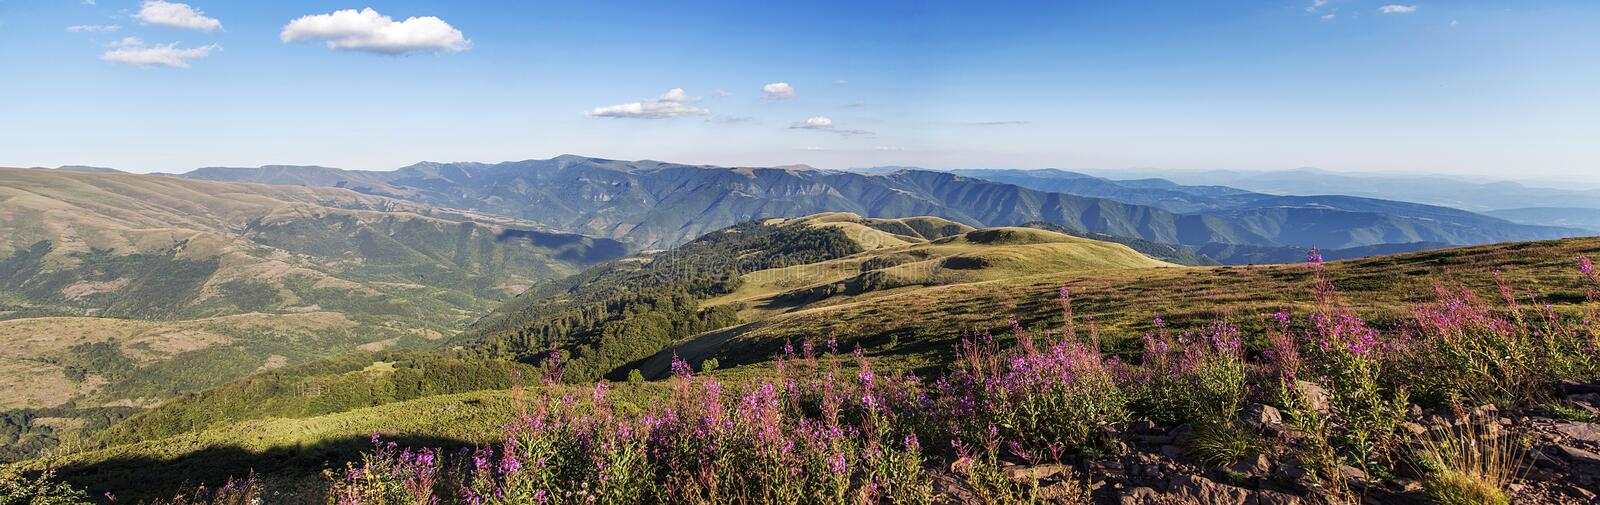 Stara planina mountain in Serbia. Detail of the Stara planina mountain in Serbia royalty free stock photography